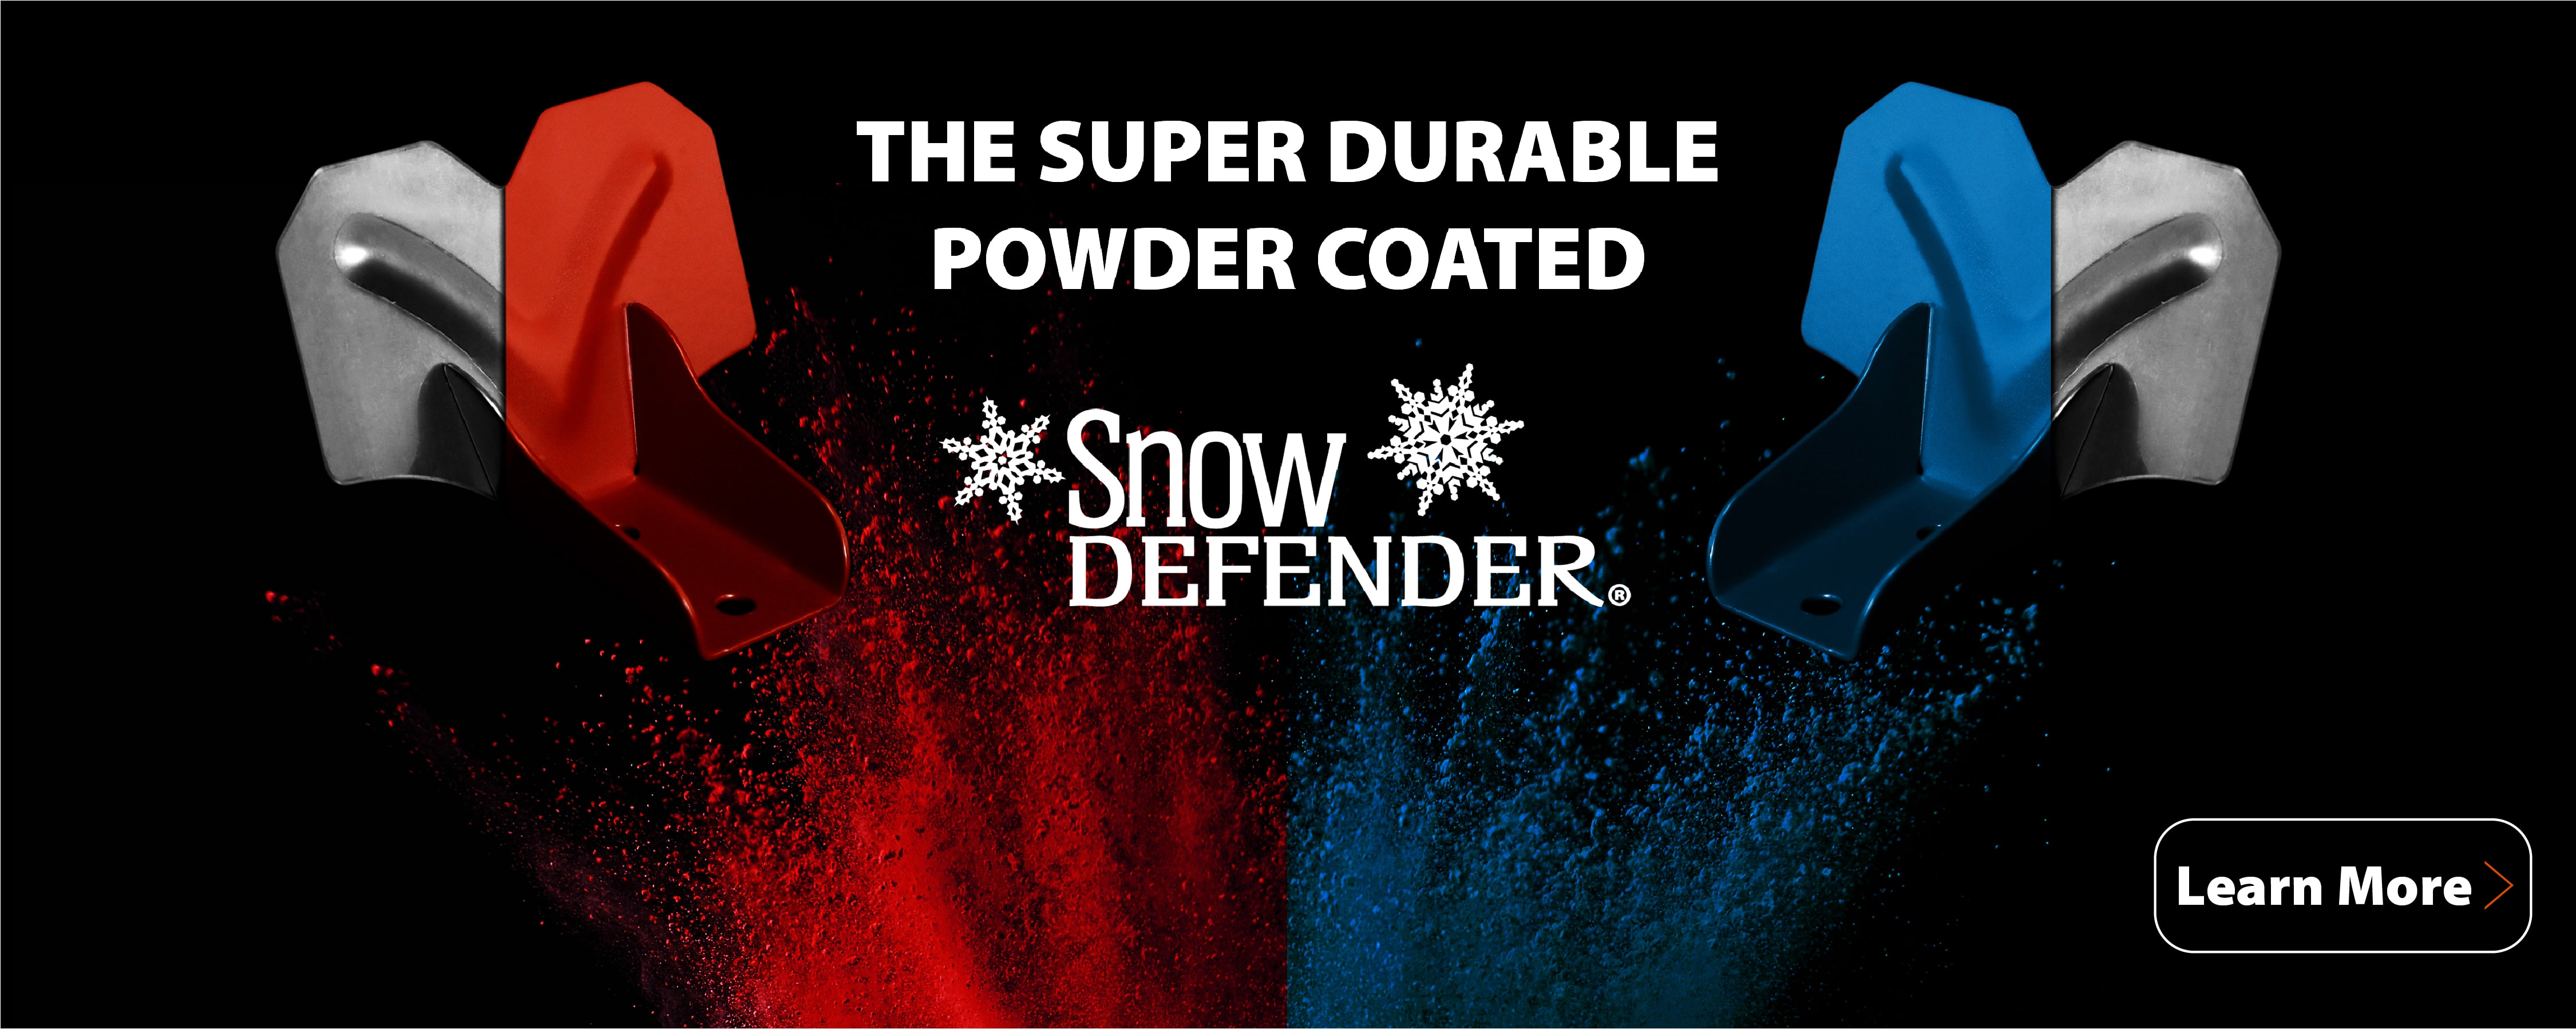 Super durable powder coated snow defender1-01-min